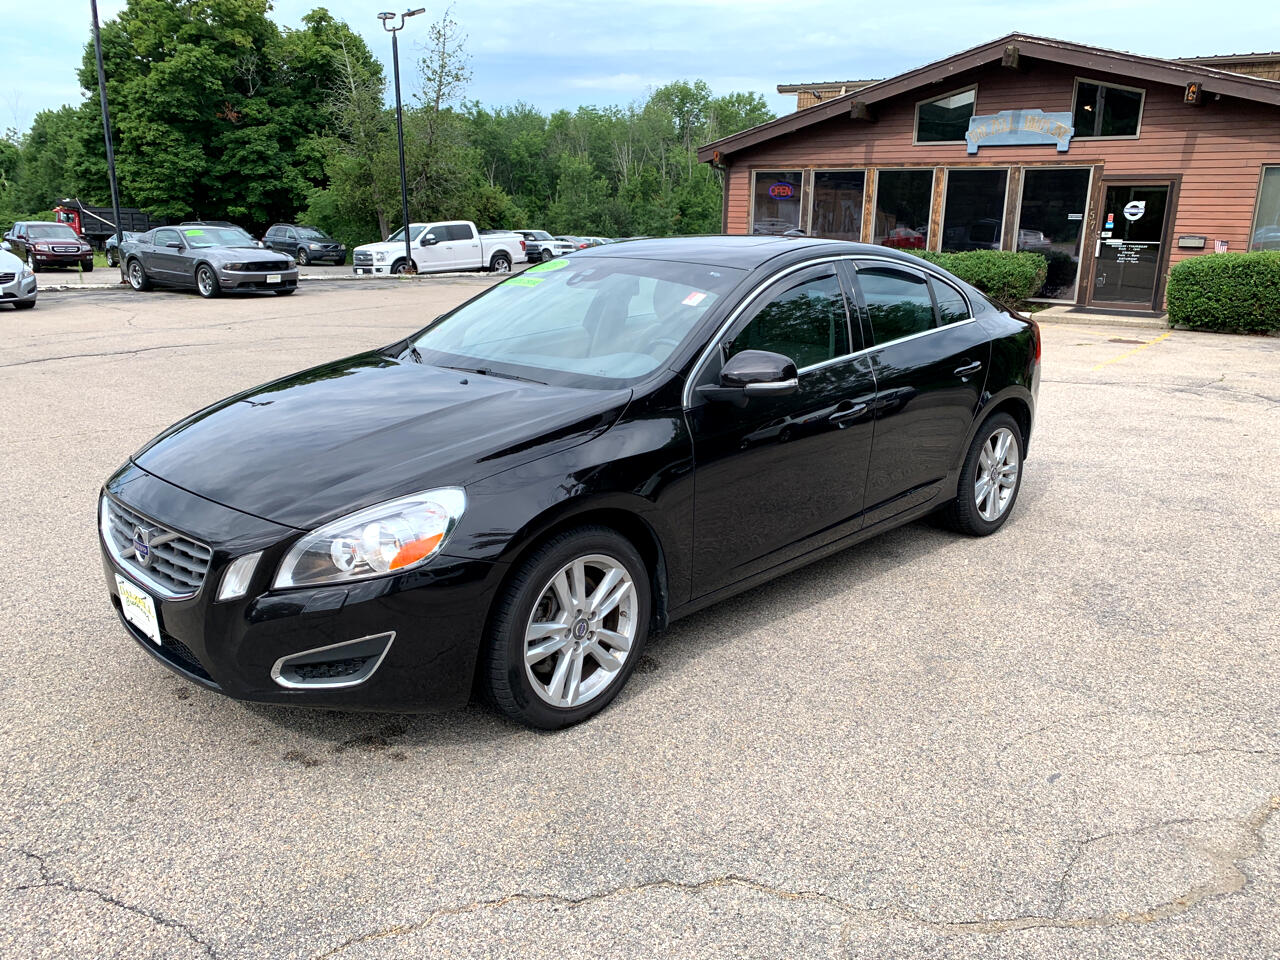 2013 Volvo S60 4dr Sdn T5 Premier AWD